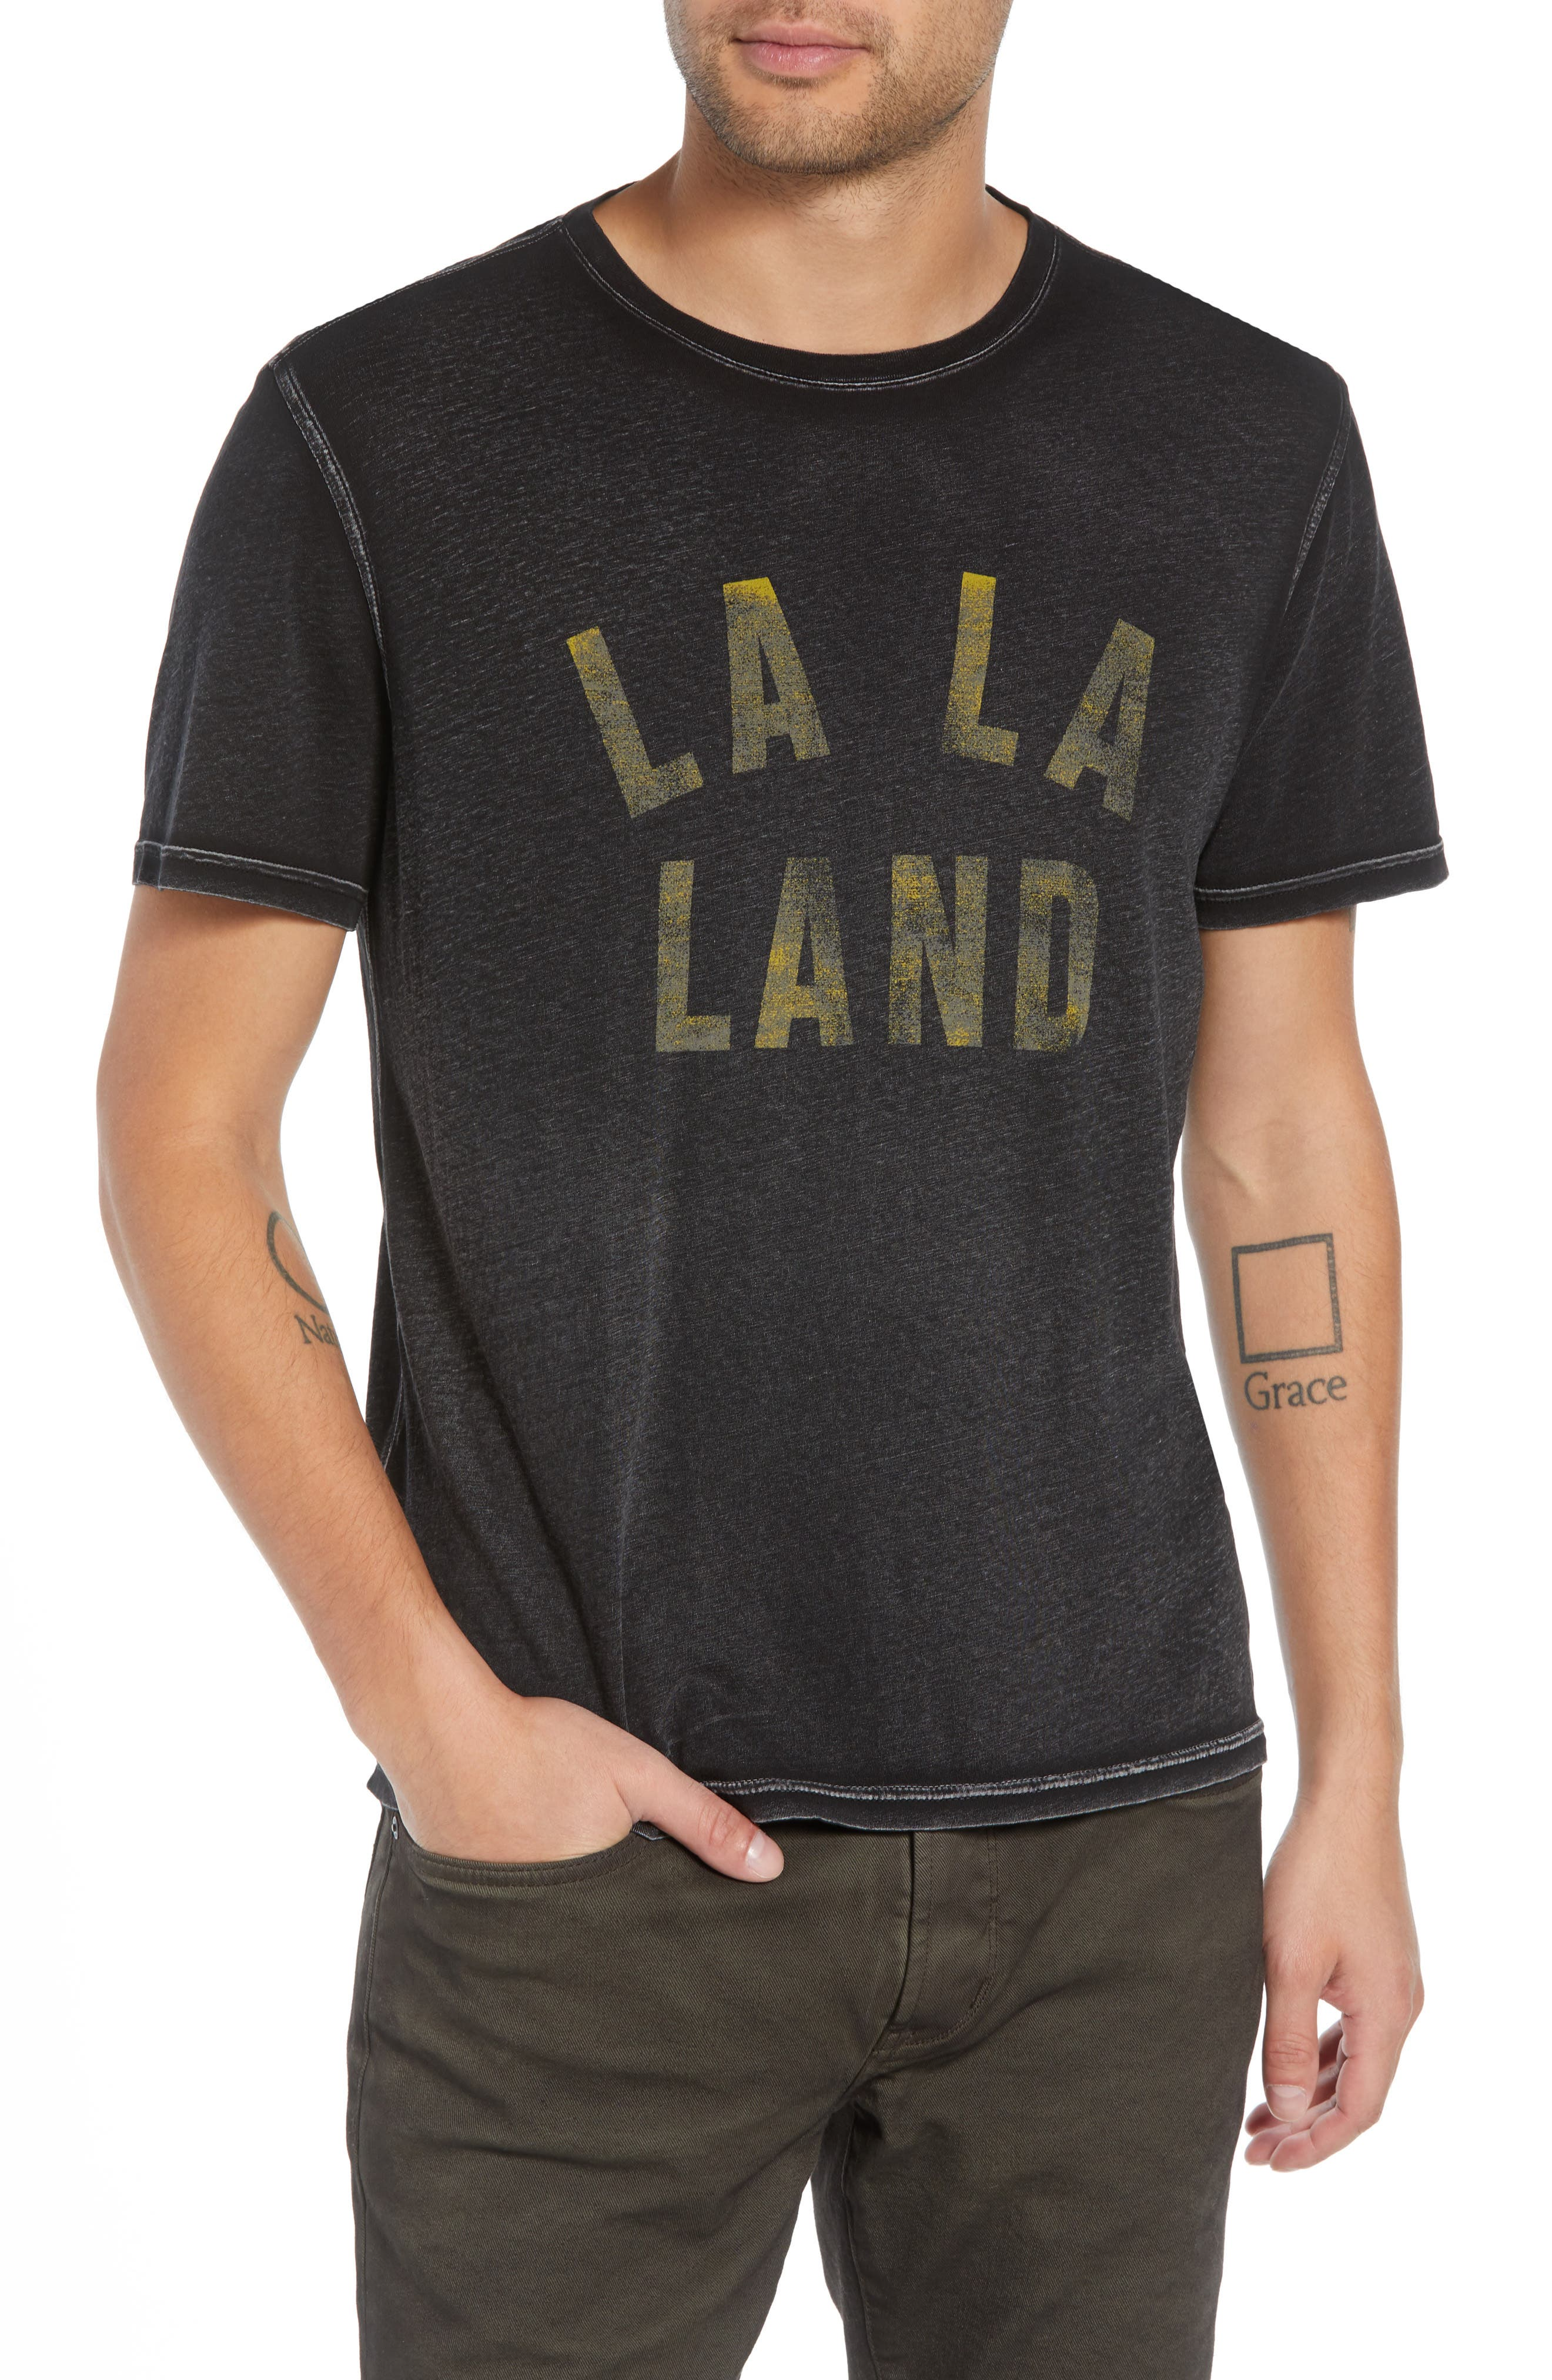 La La Land T-Shirt,                         Main,                         color, 020